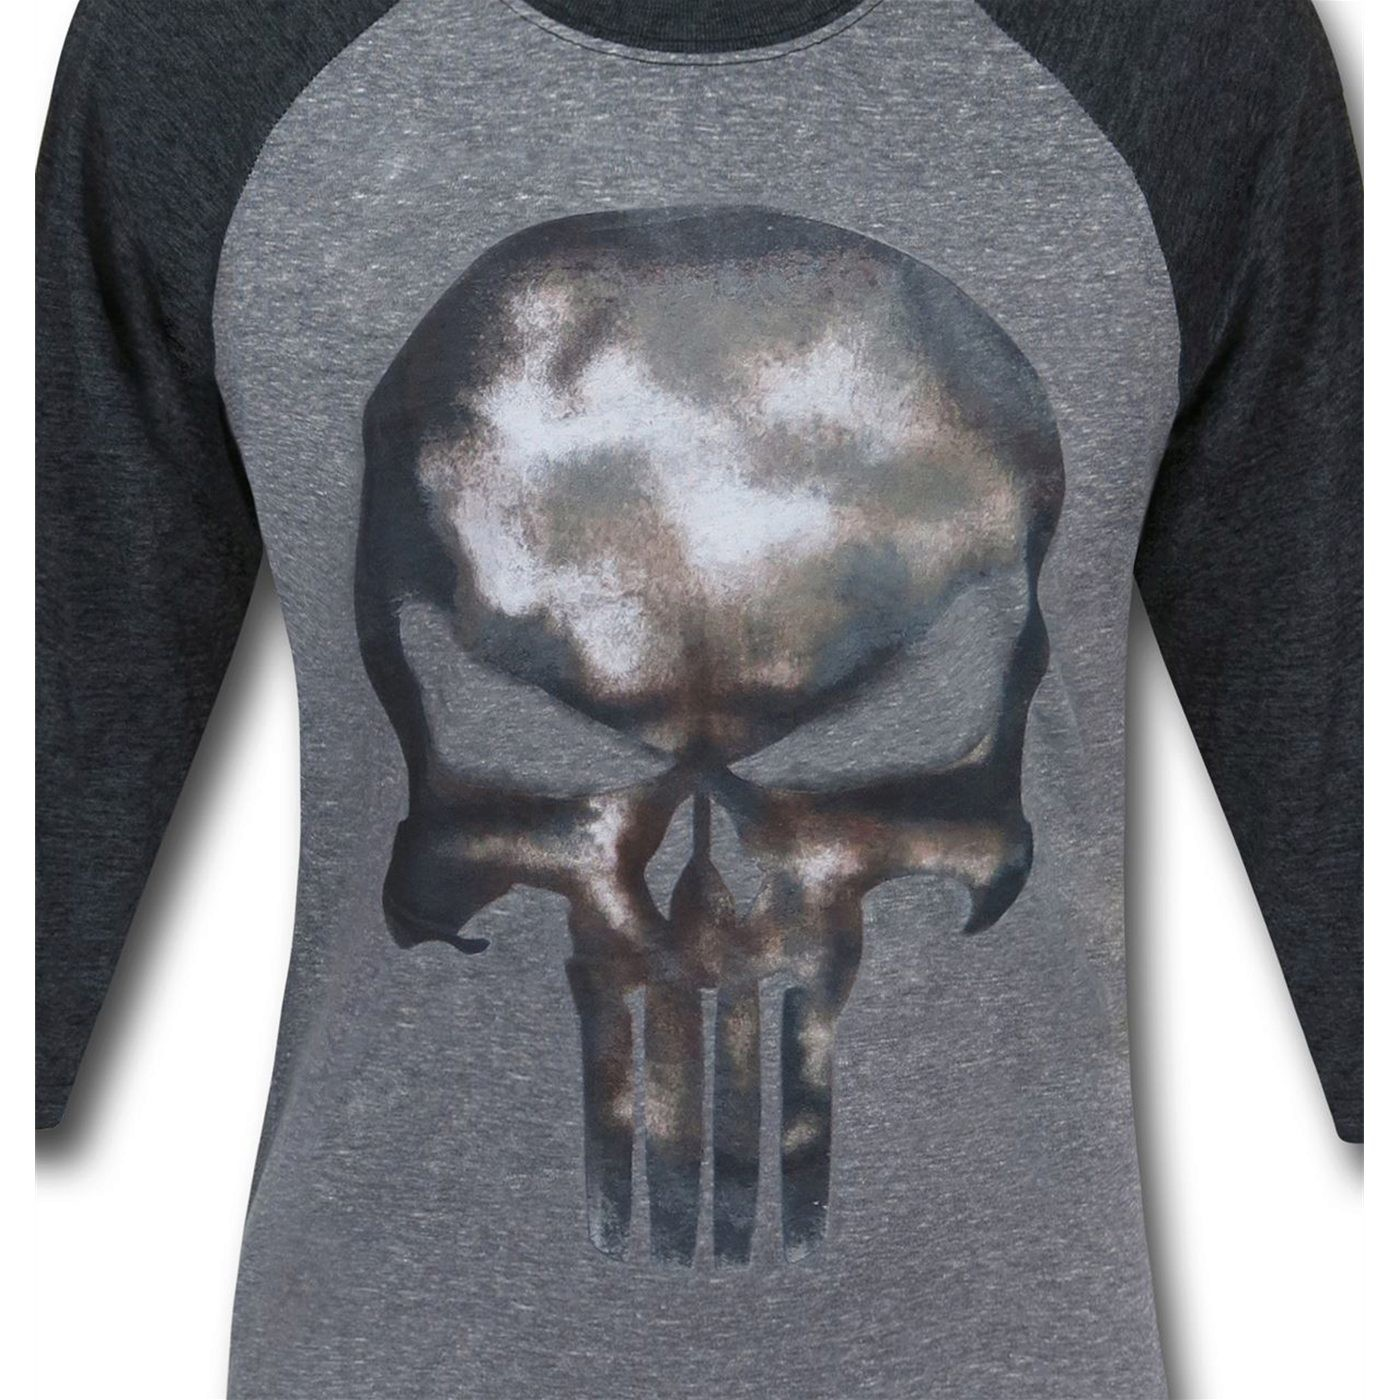 Punisher Movie Symbol Men's Baseball T-Shirt